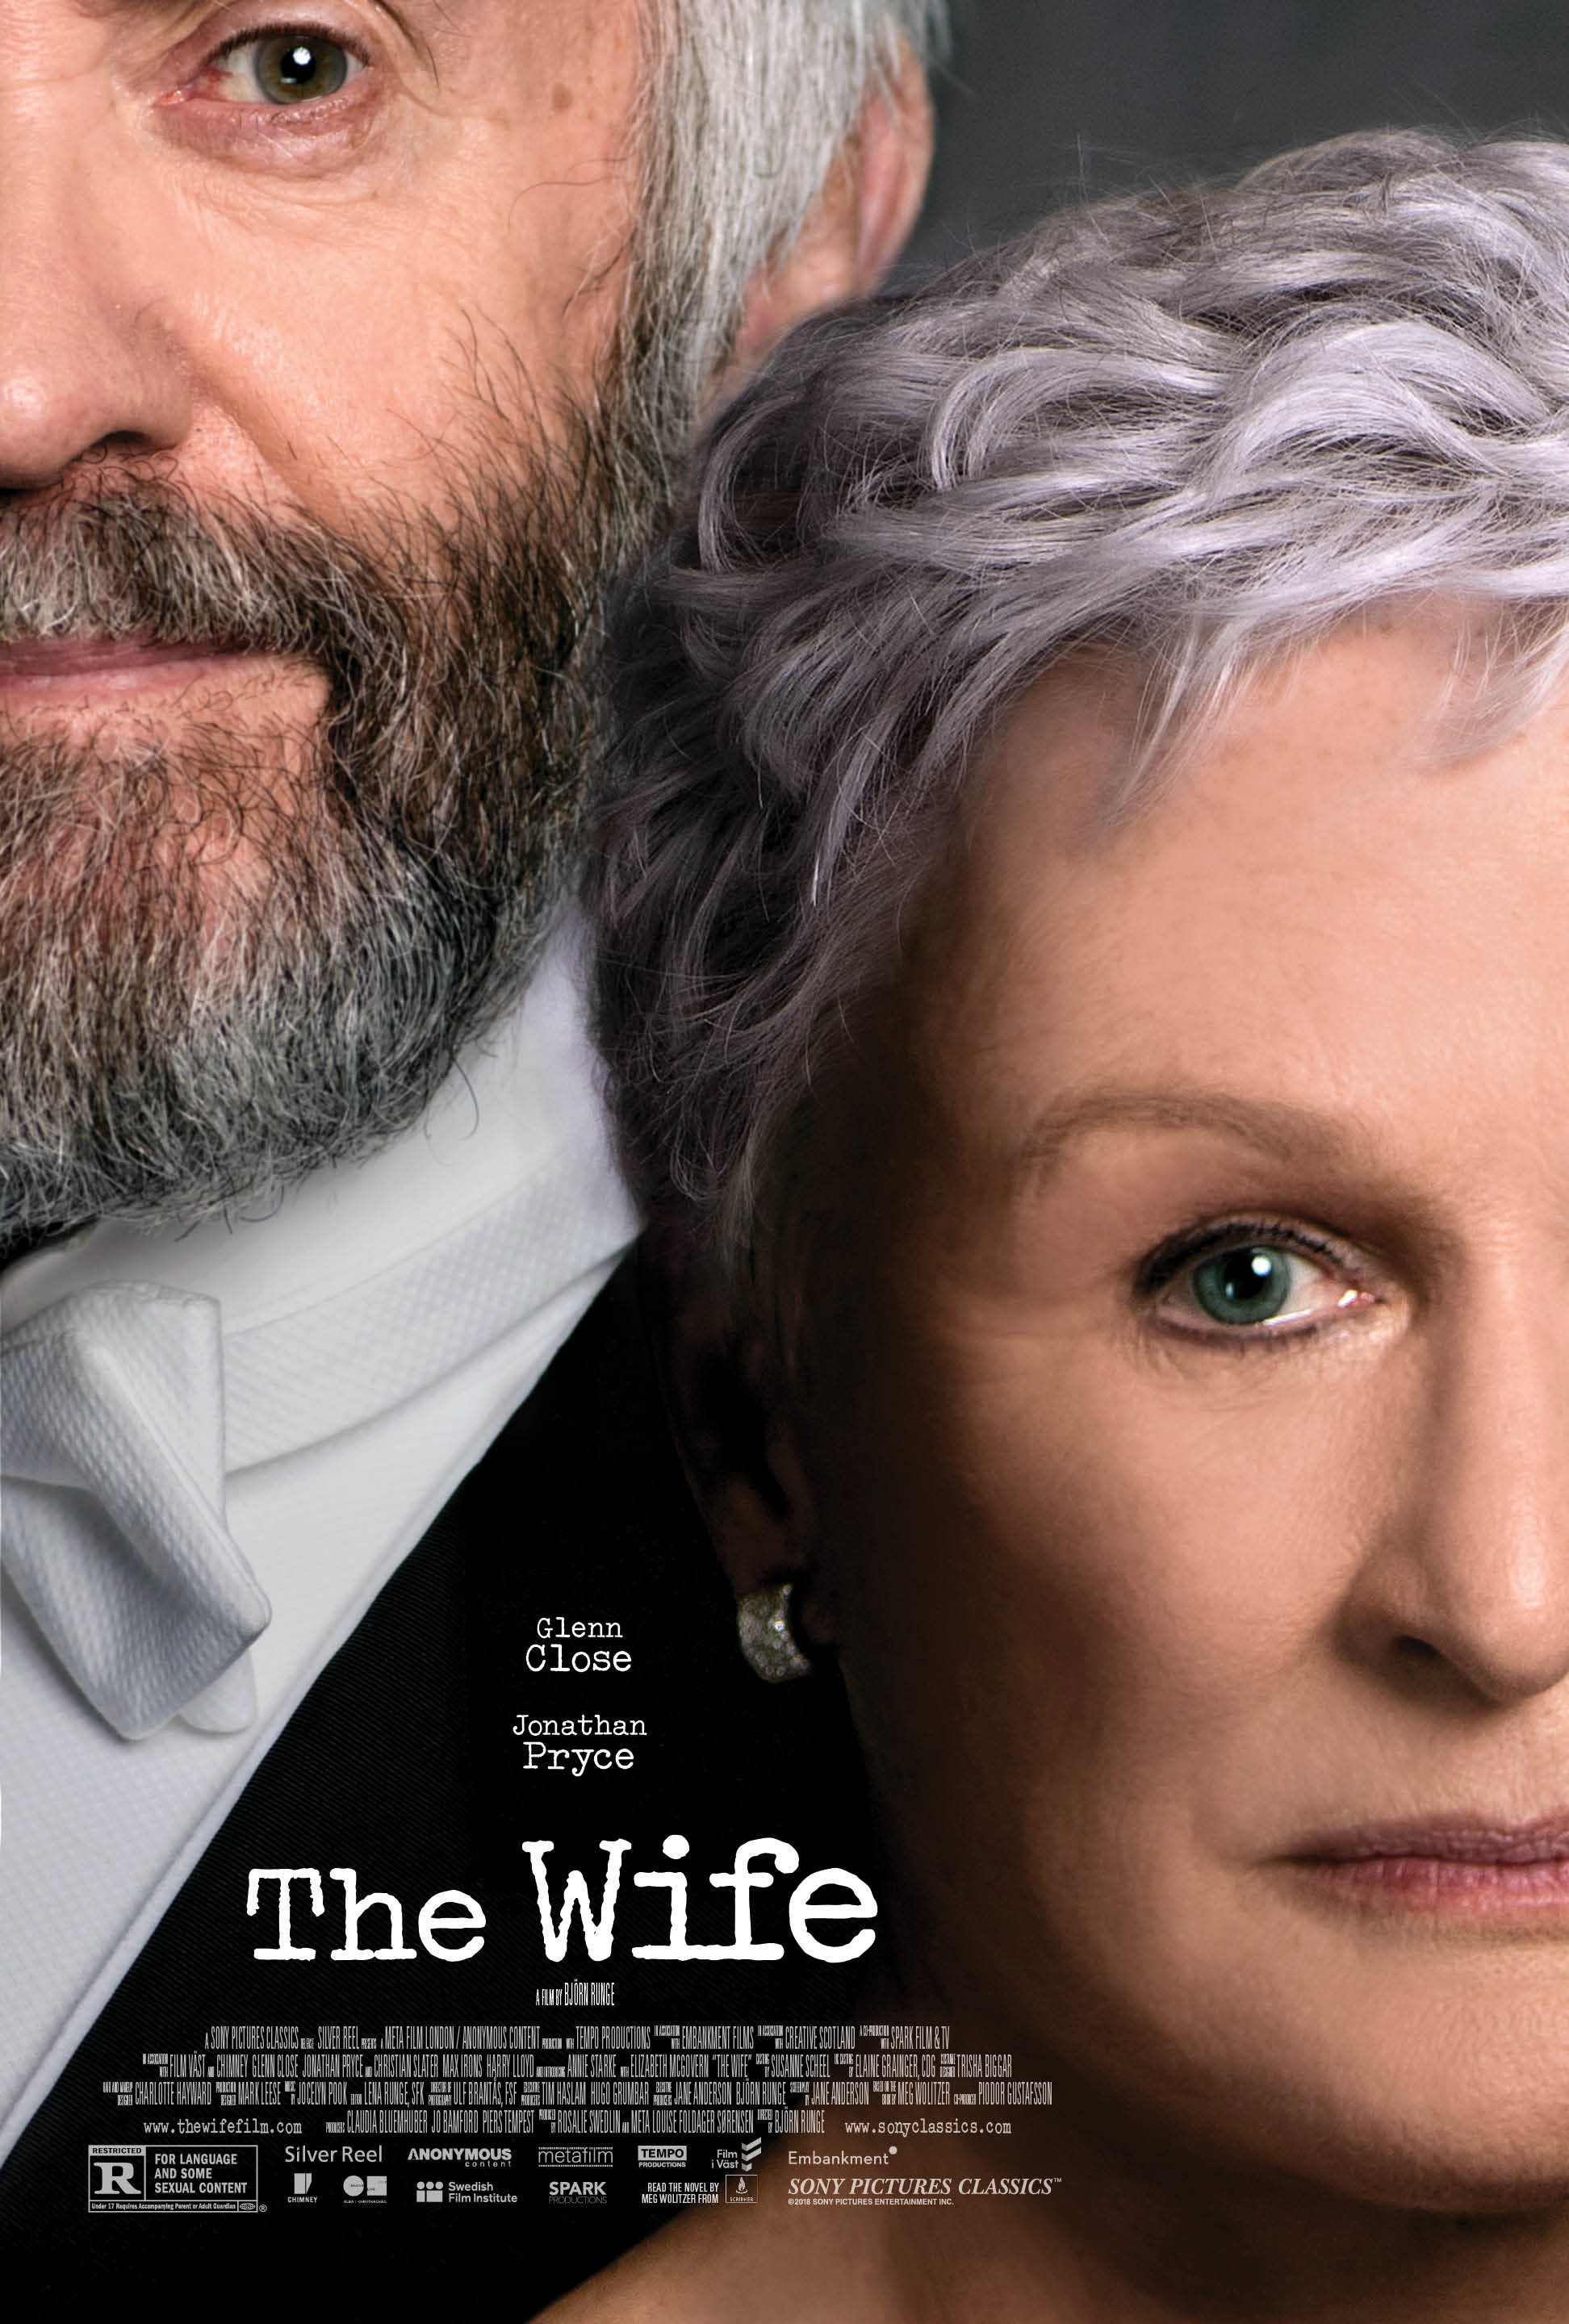 Žmona (2017) / The Wife